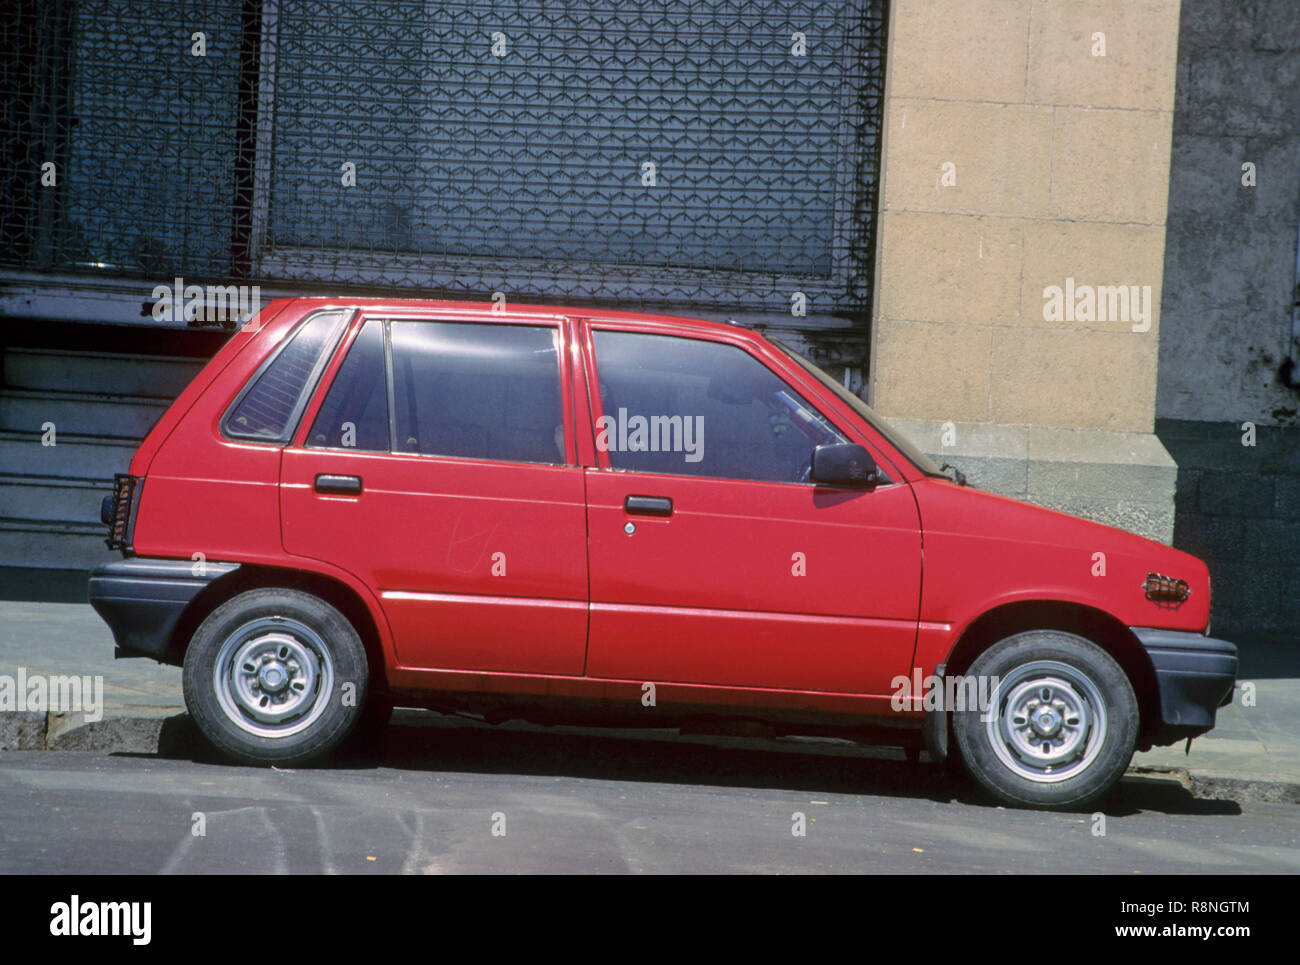 red maruti 800 car, india - Stock Image